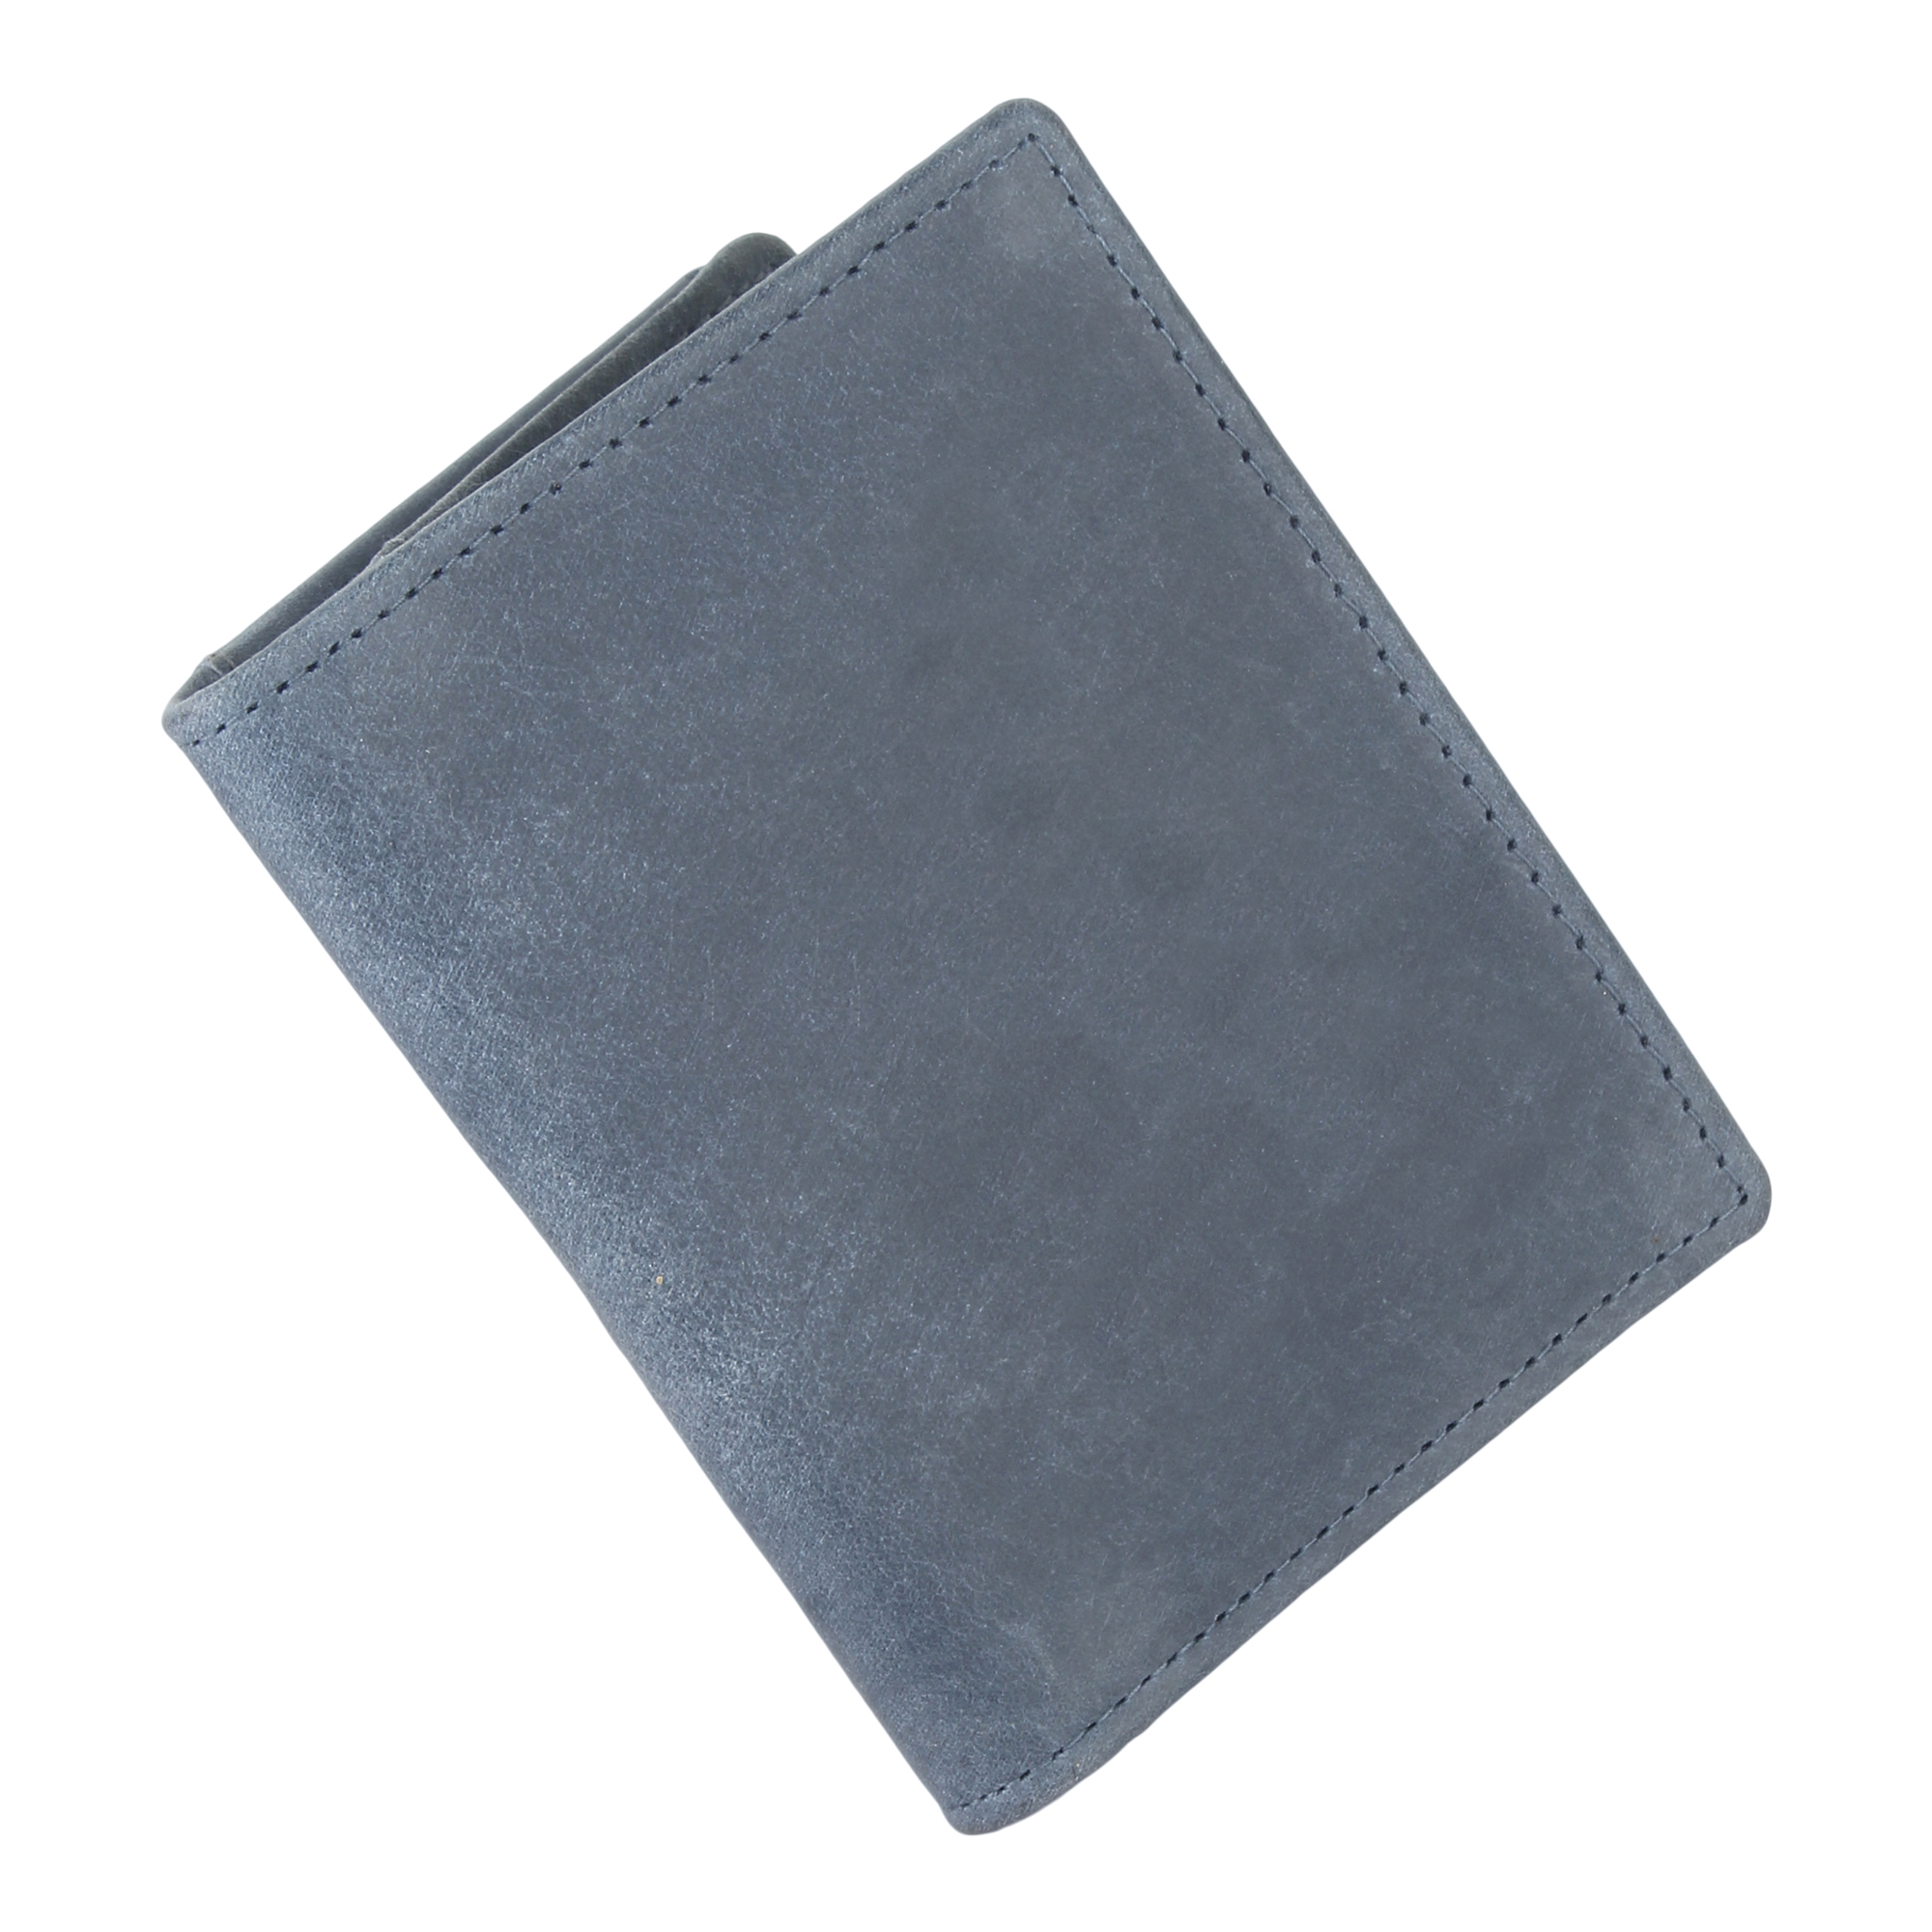 Leather Card Holder Wallet Manufacturers In Marseille, Card Holder Wallet Suppliers In Marseille, Card Holder Wallet Wholesalers In Marseille, Card Holder Wallet Traders In Marseille